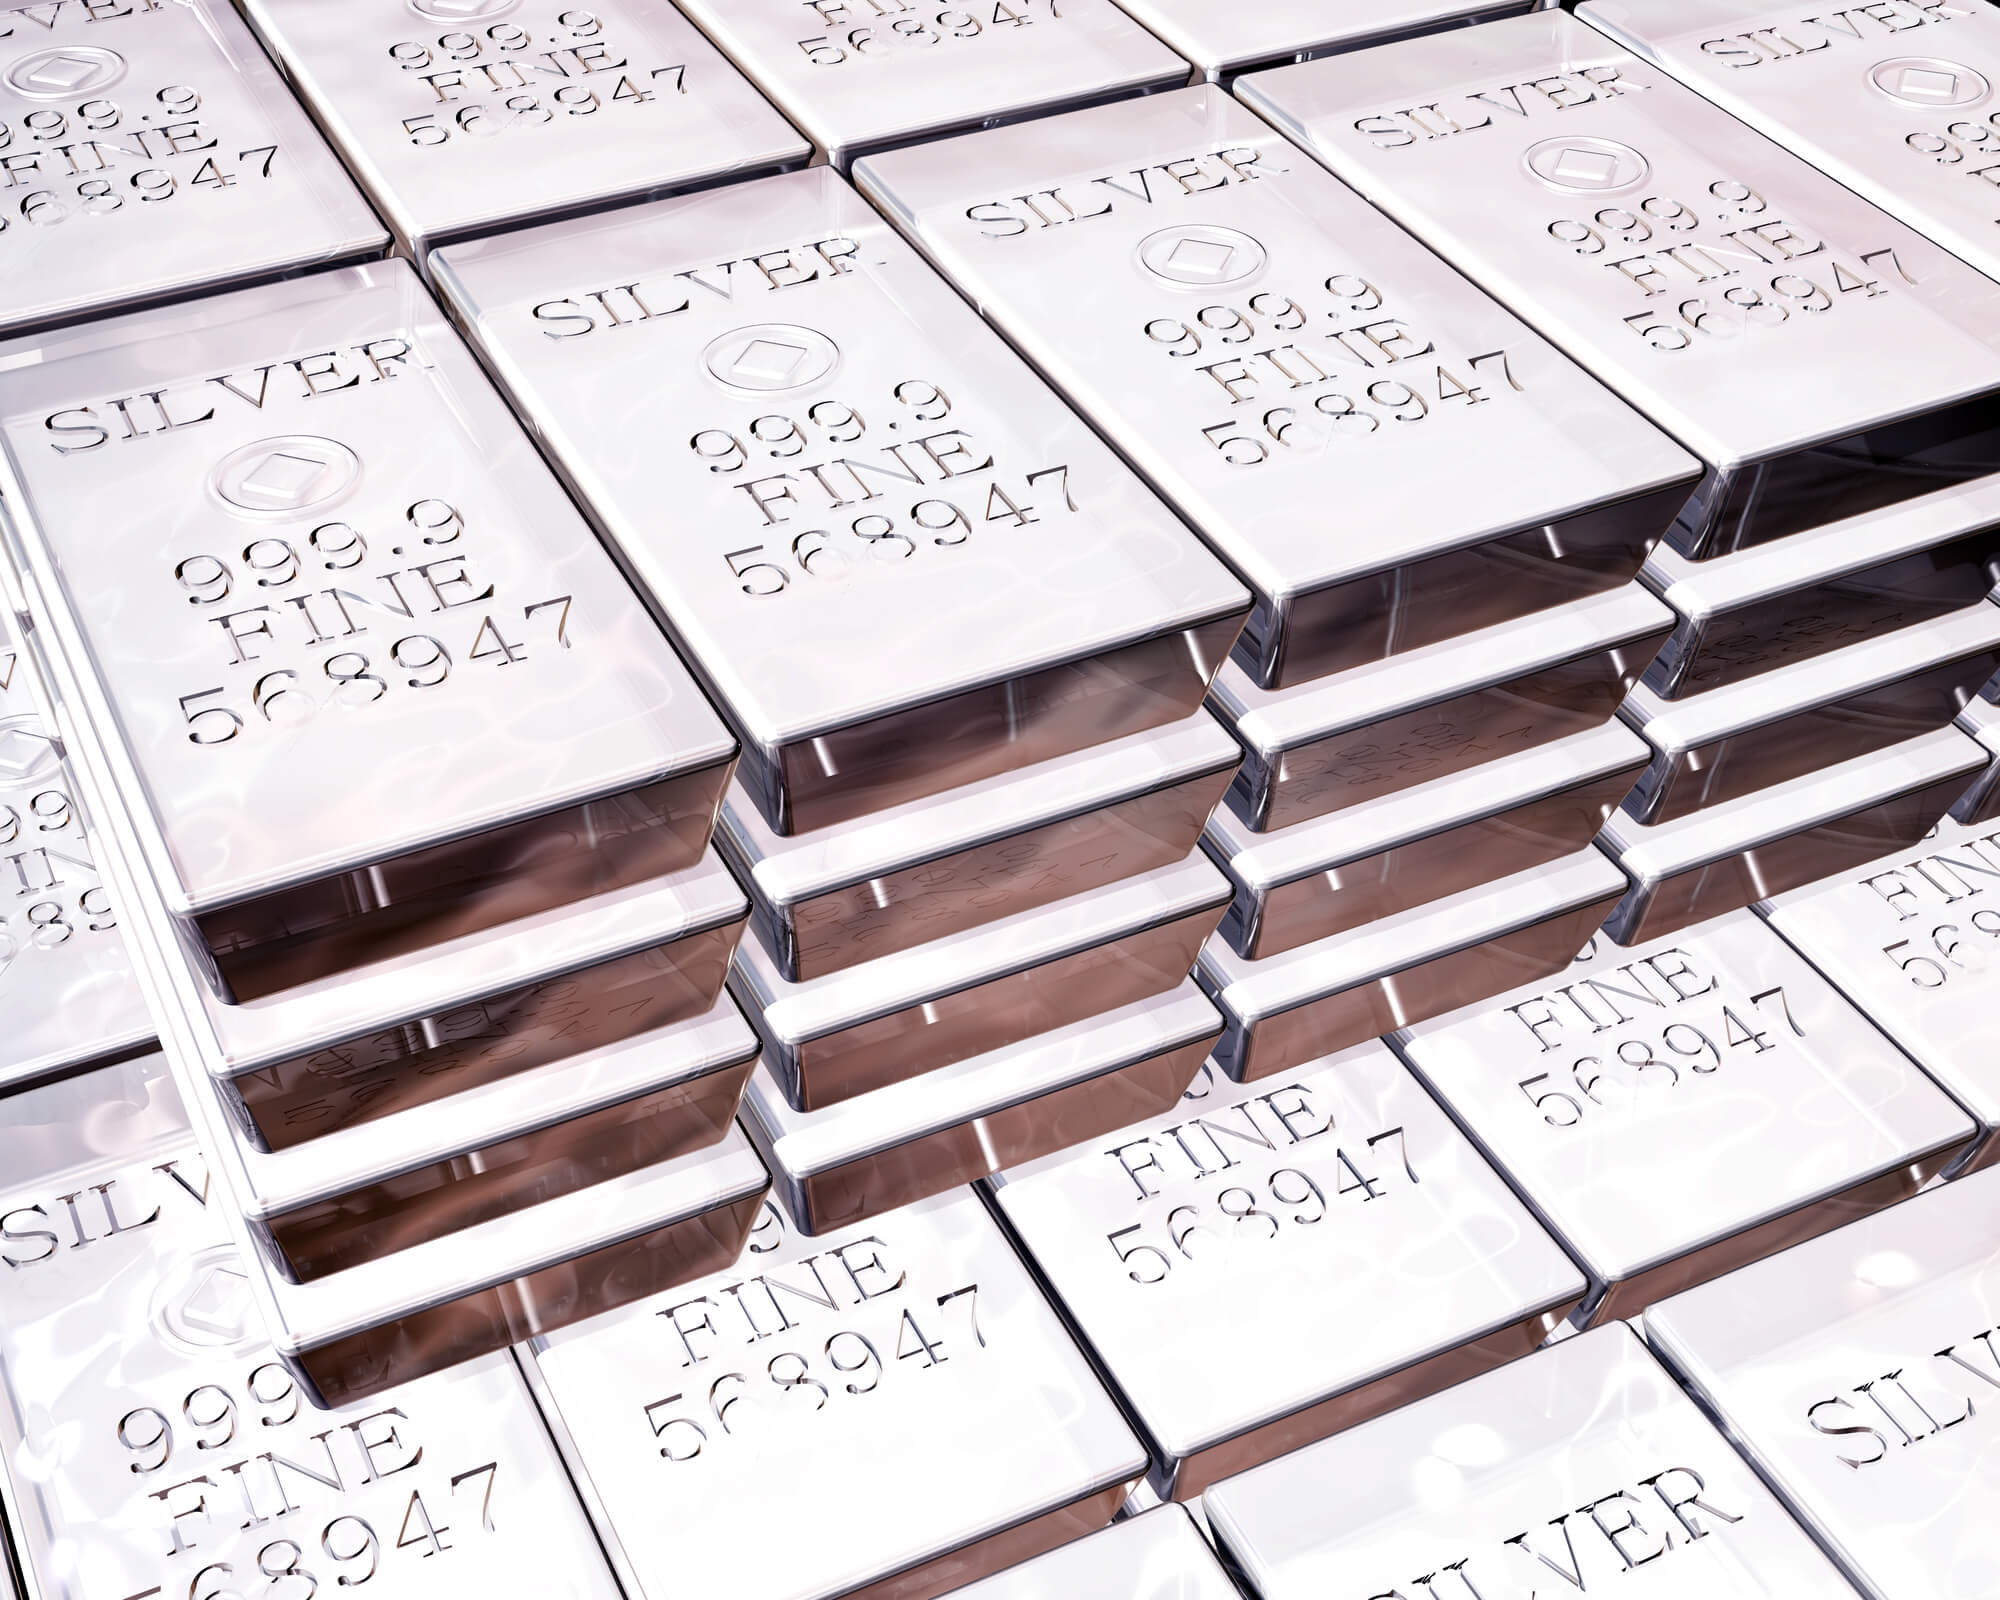 where can I get real Johnson Matthey 100 oz Silver Bar in West Palm Beach?